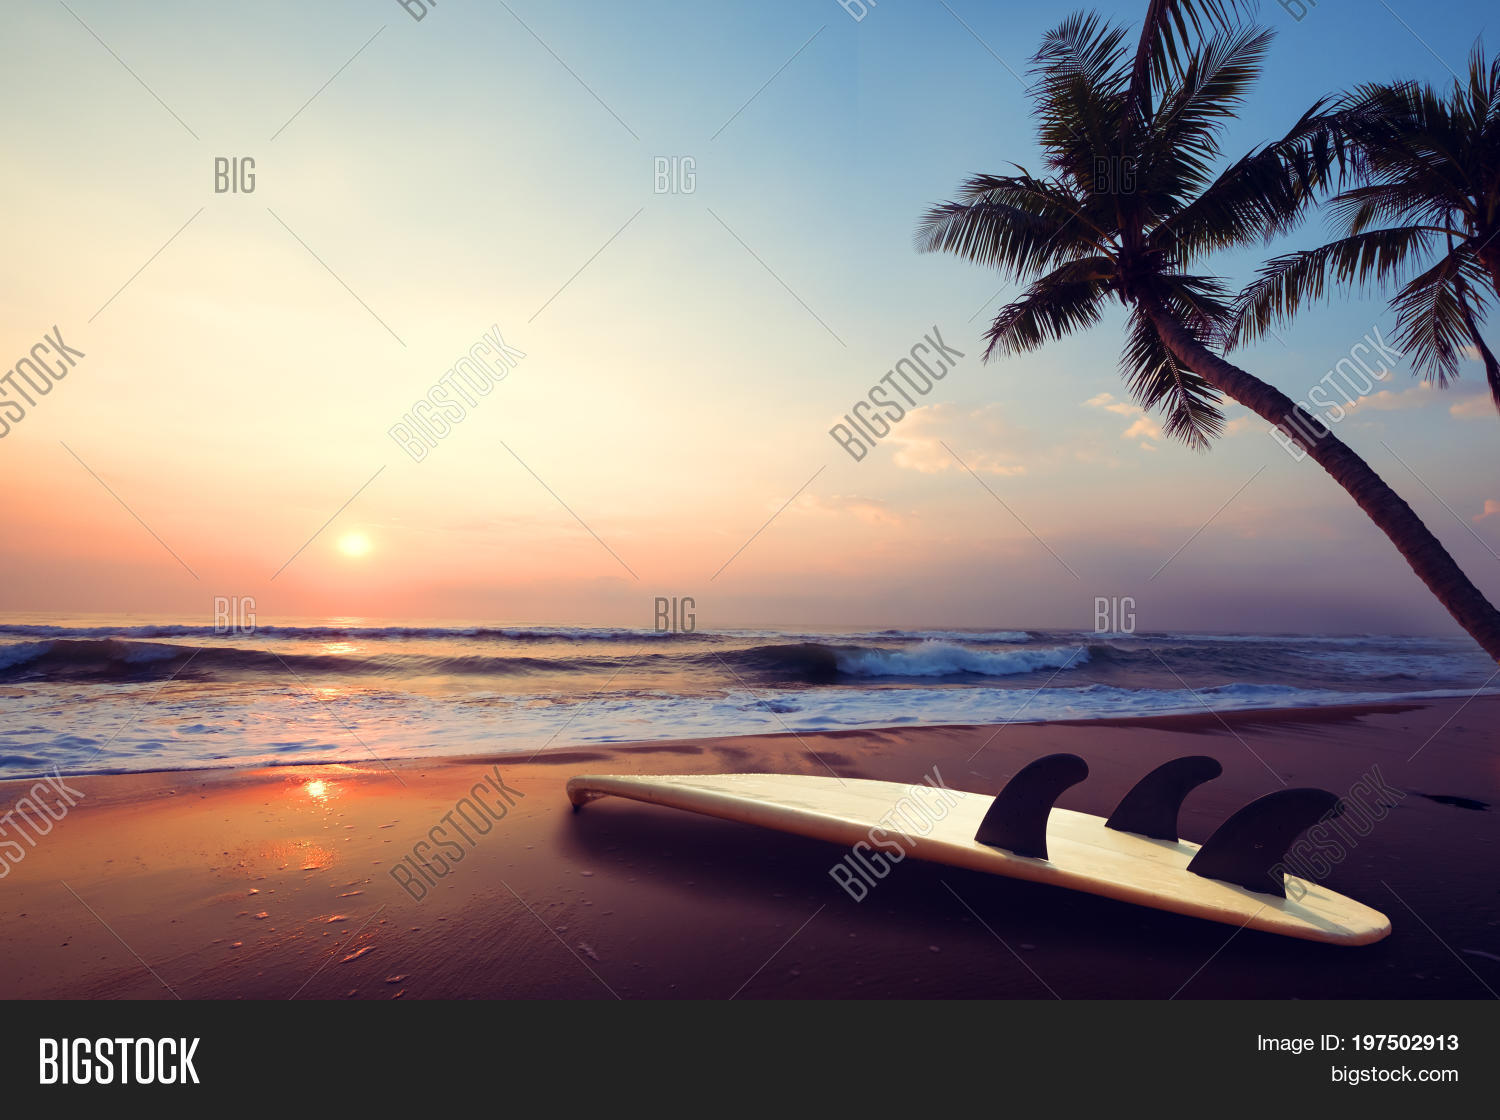 Silhouette Surfboard On Tropical Beach At Sunset In Summer Landscape Of And Palm